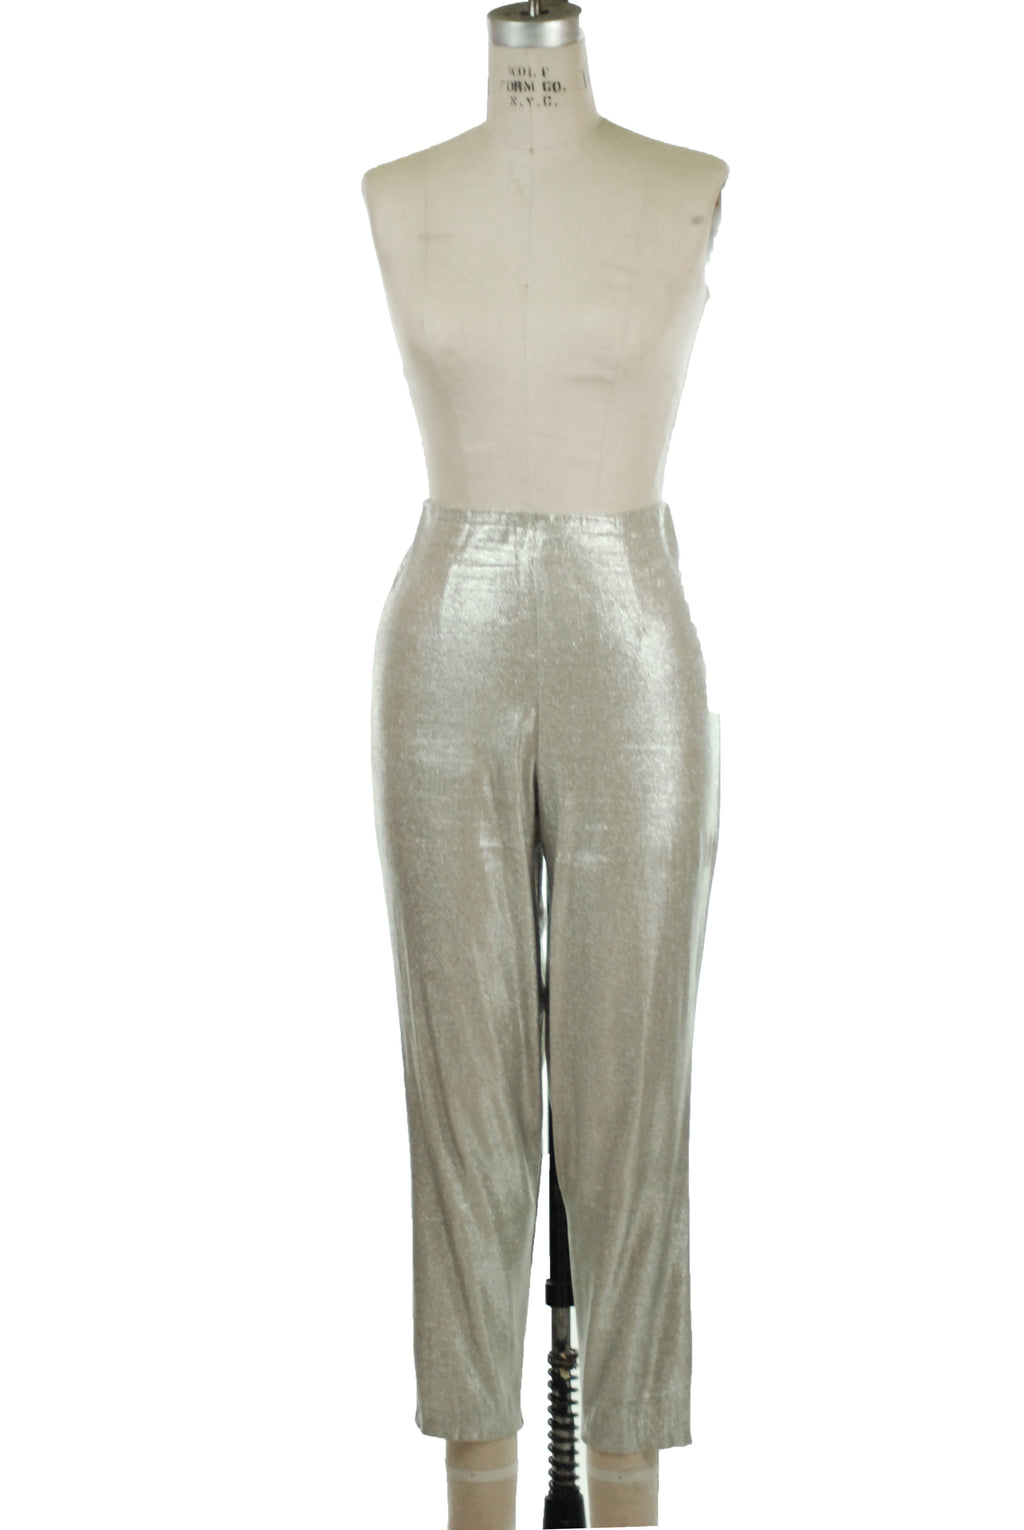 Killer 1960s Sparkling Silver Lurex Cigarette Pants with High Waist